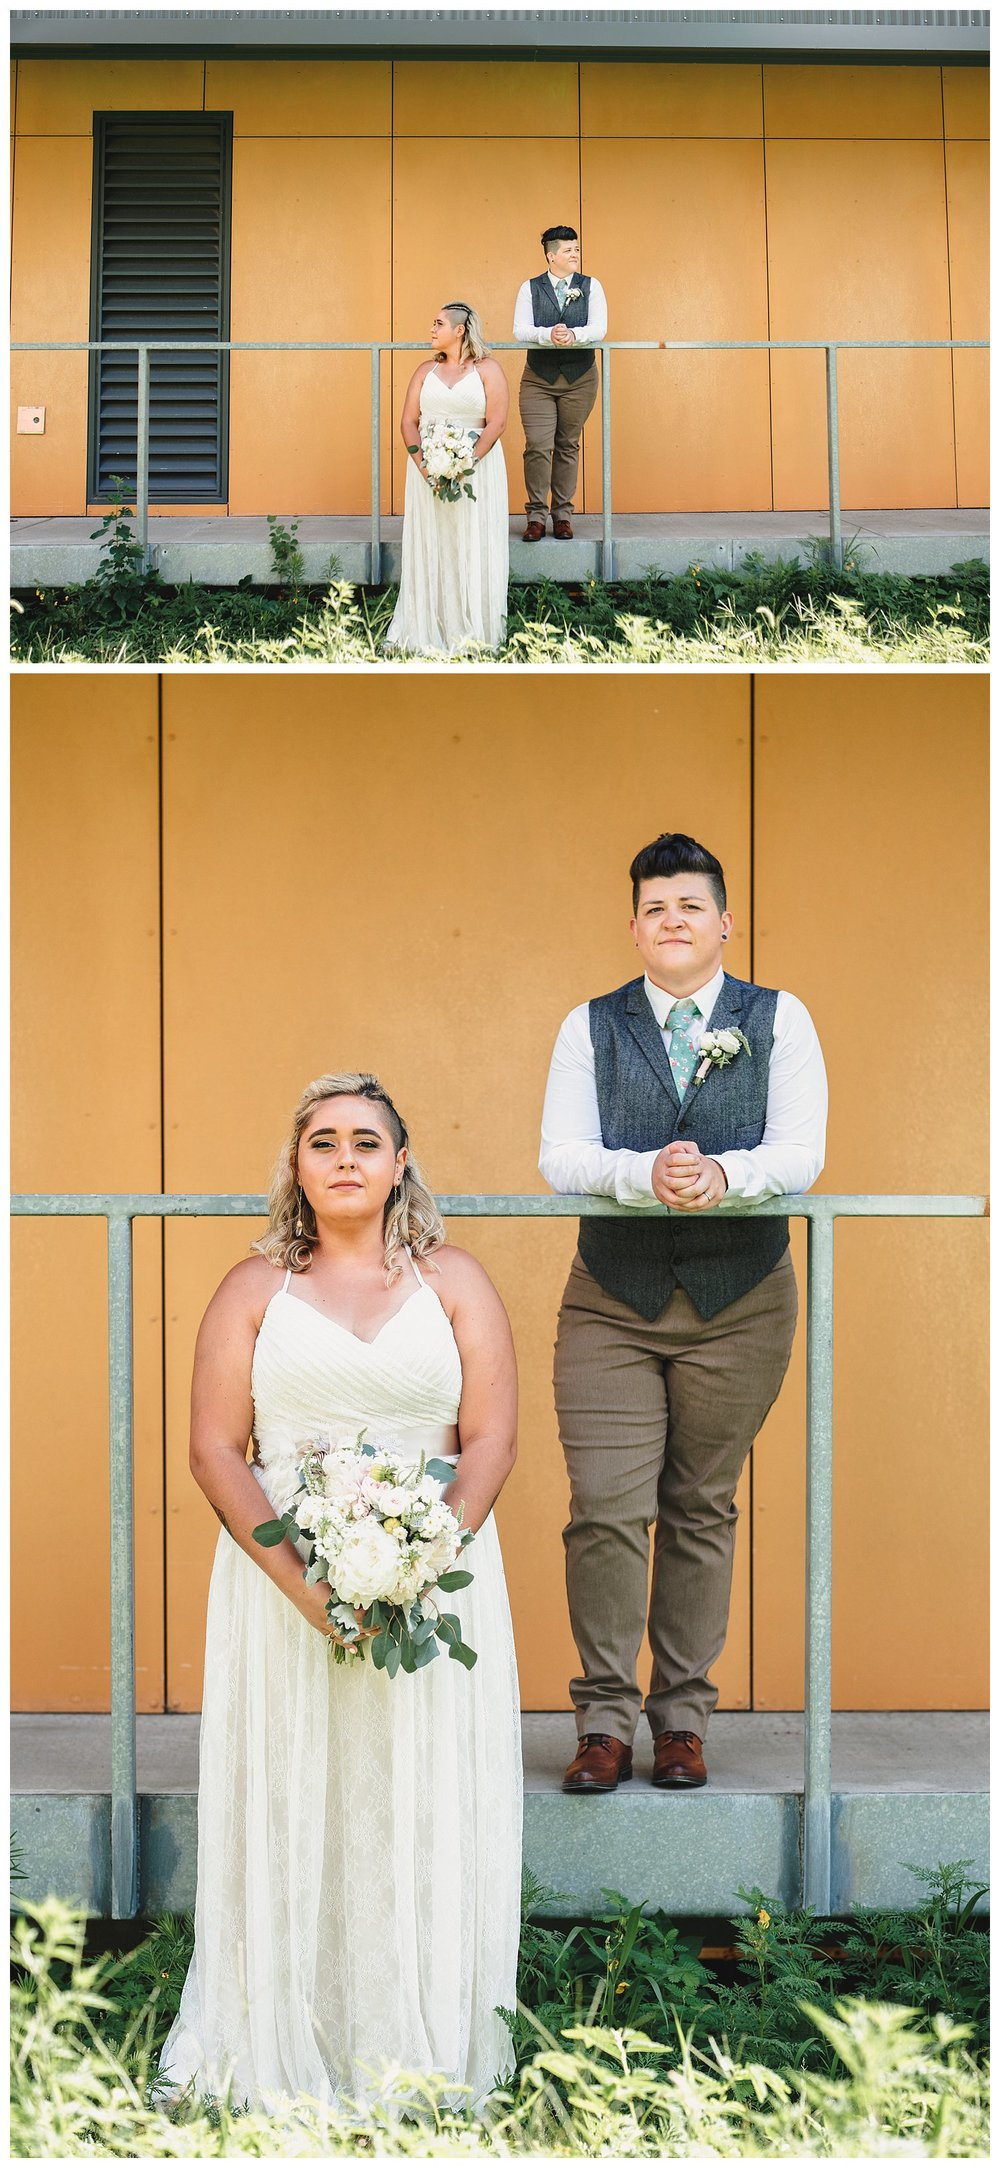 Kelsey_Diane_Photography_The_Vow_Exchange_Kansas_City_LGBT_Friendly_Wedding_Photographer_Kansas_City_Scout_Ica_0715.jpg